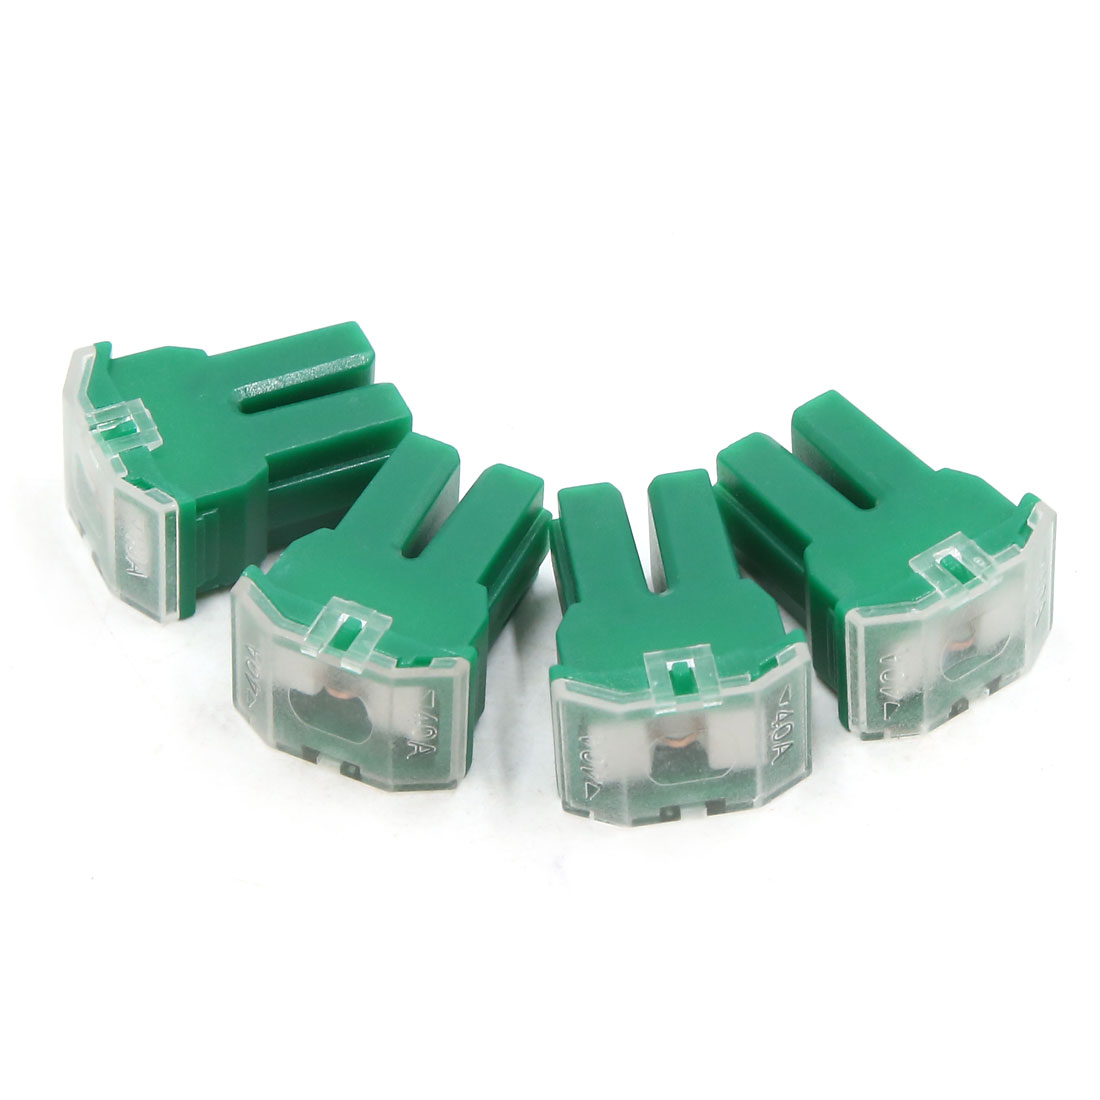 4pcs 40A Green Plastic Casing Female PAL Cartridge Fuse for Auto Car Vehicle